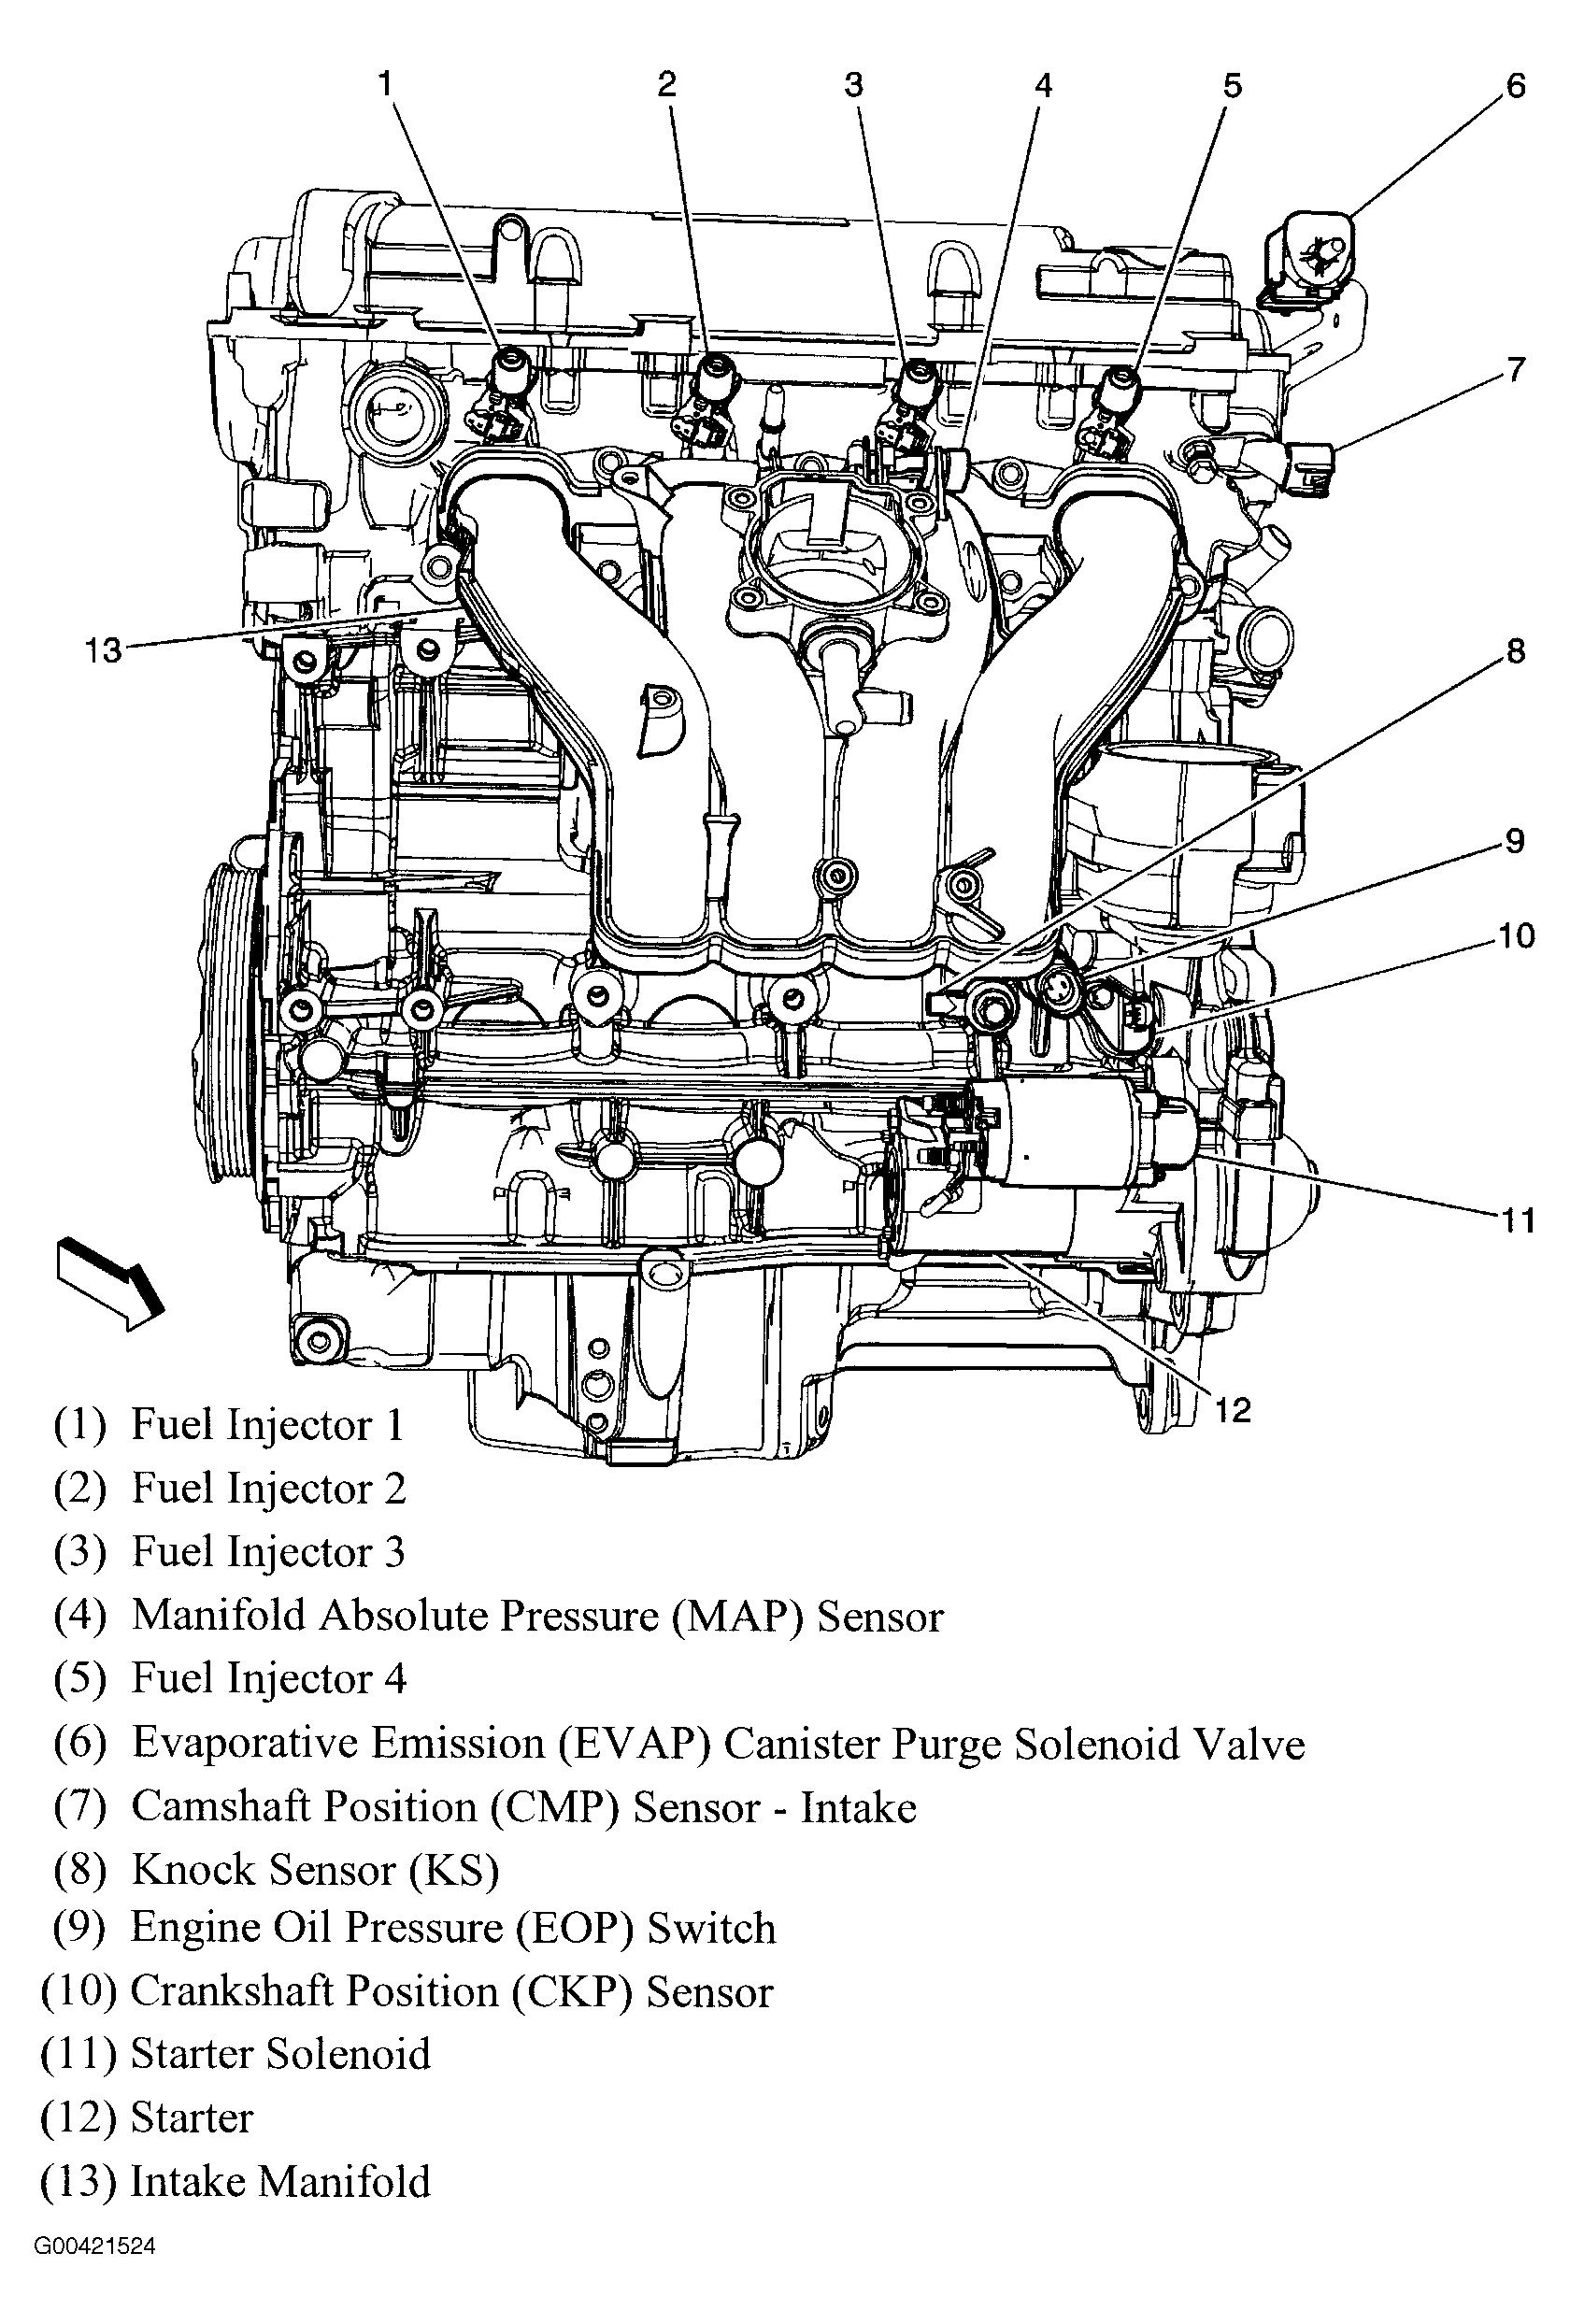 Original on 2000 Buick Lesabre 3800 Engine Diagram